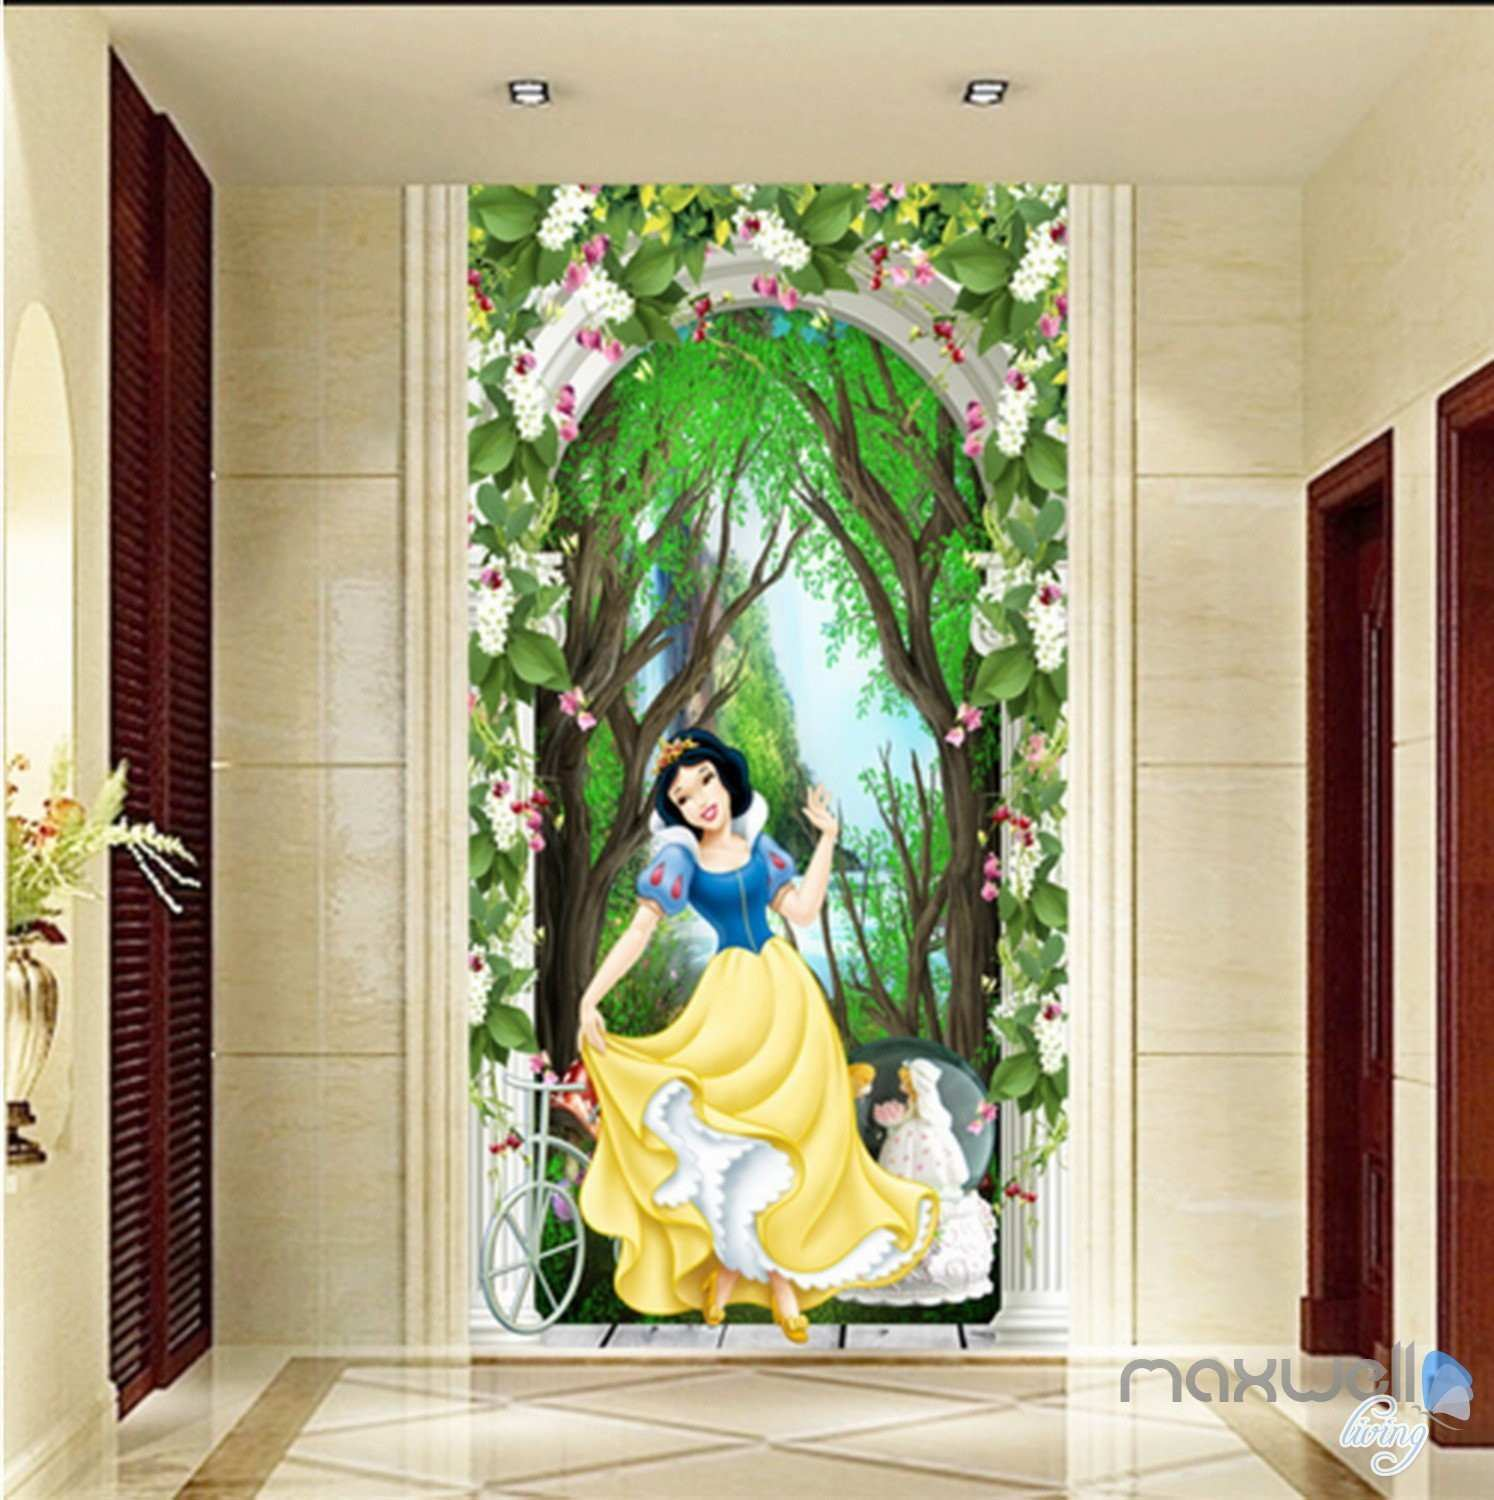 3D Snow White Princess Flower Arch Forest Corridor Entrance Wall